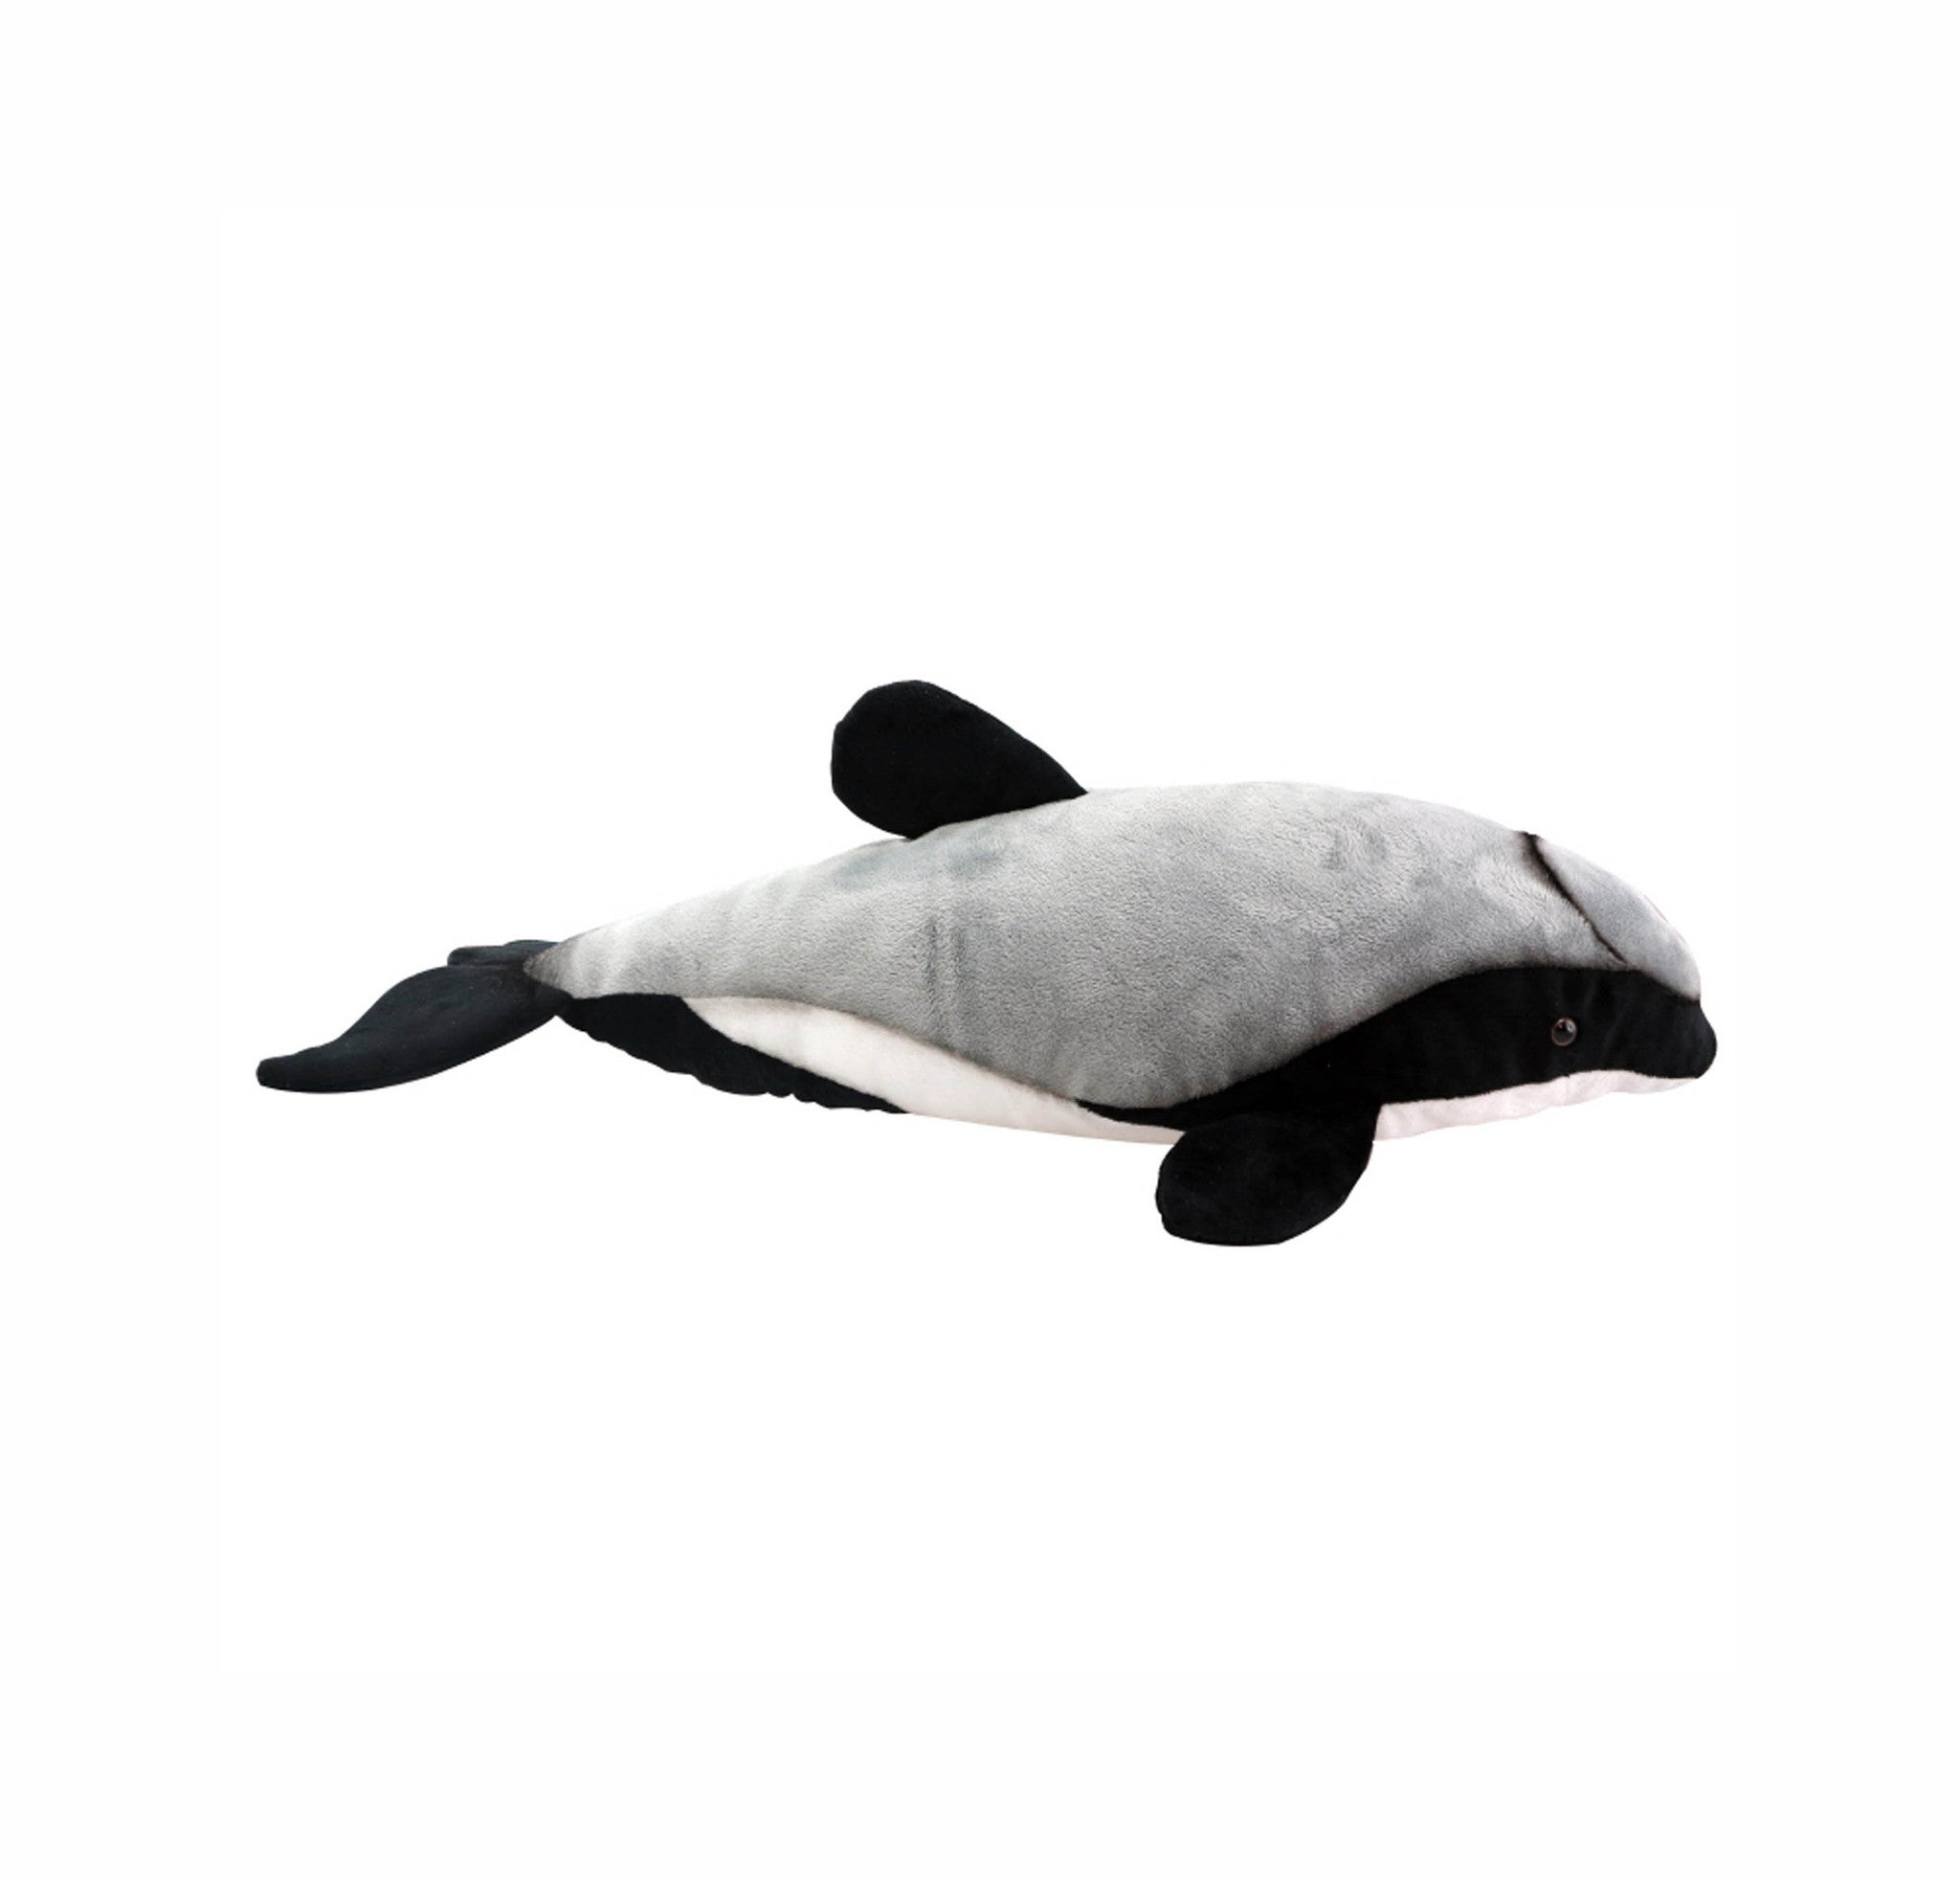 Hector/Maui dolphin soft toy with sound